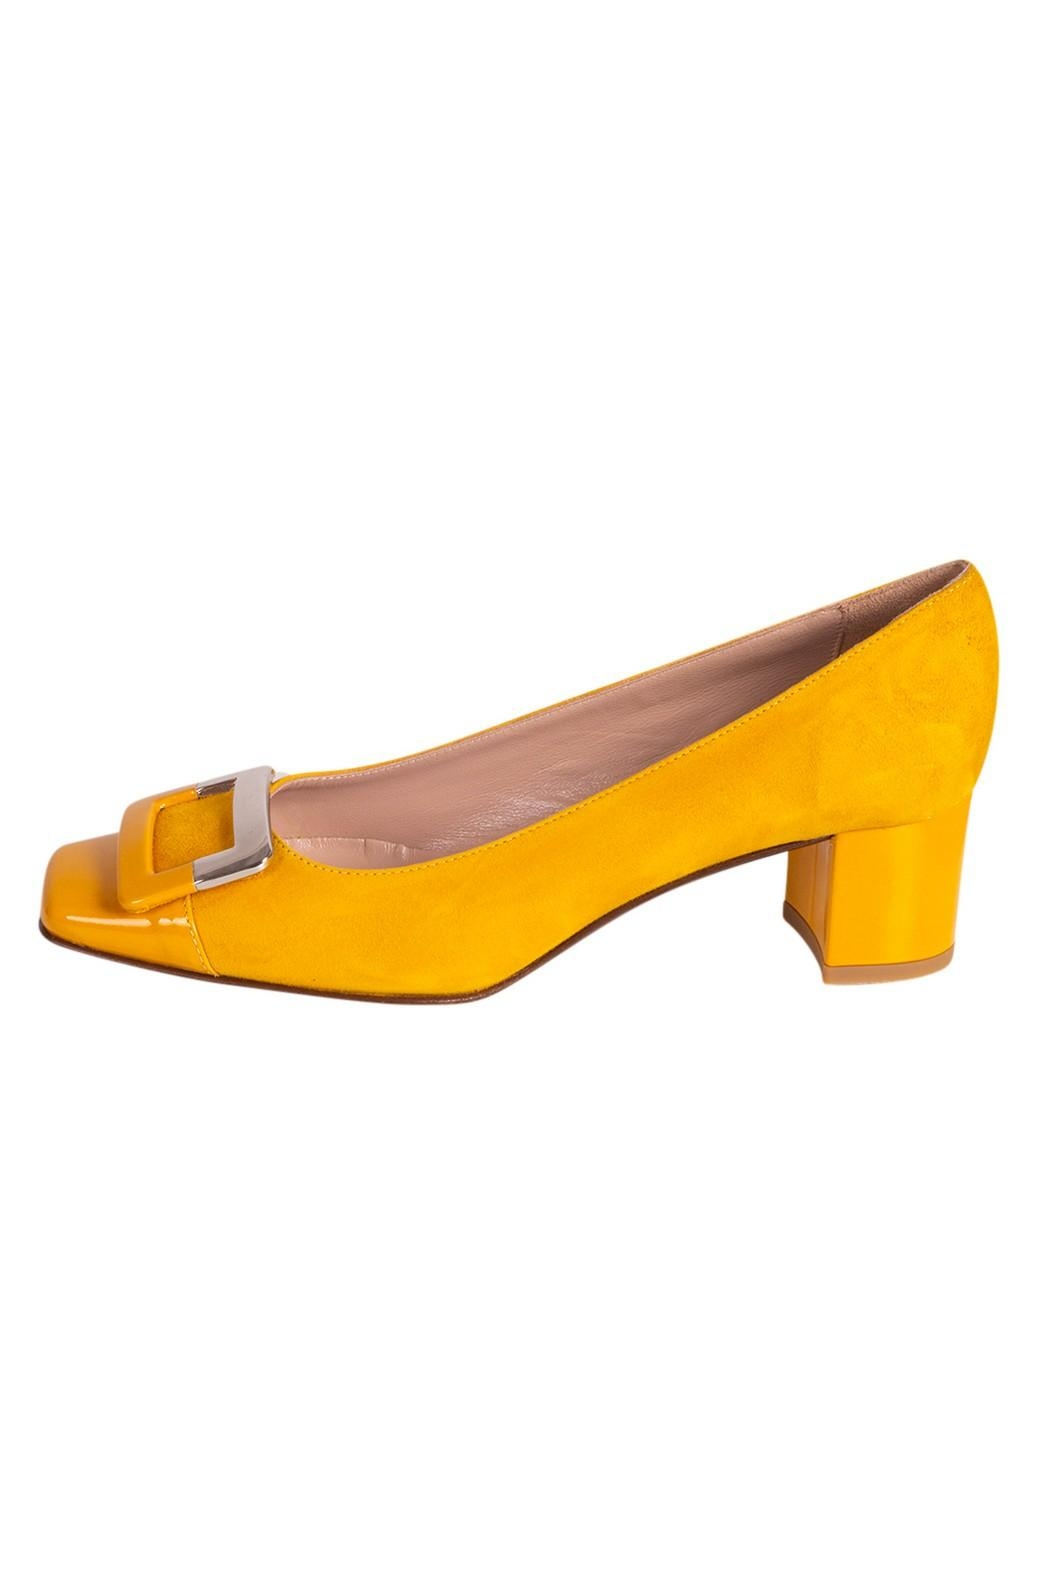 Pascucci Yellow Suede Pump - Main Image